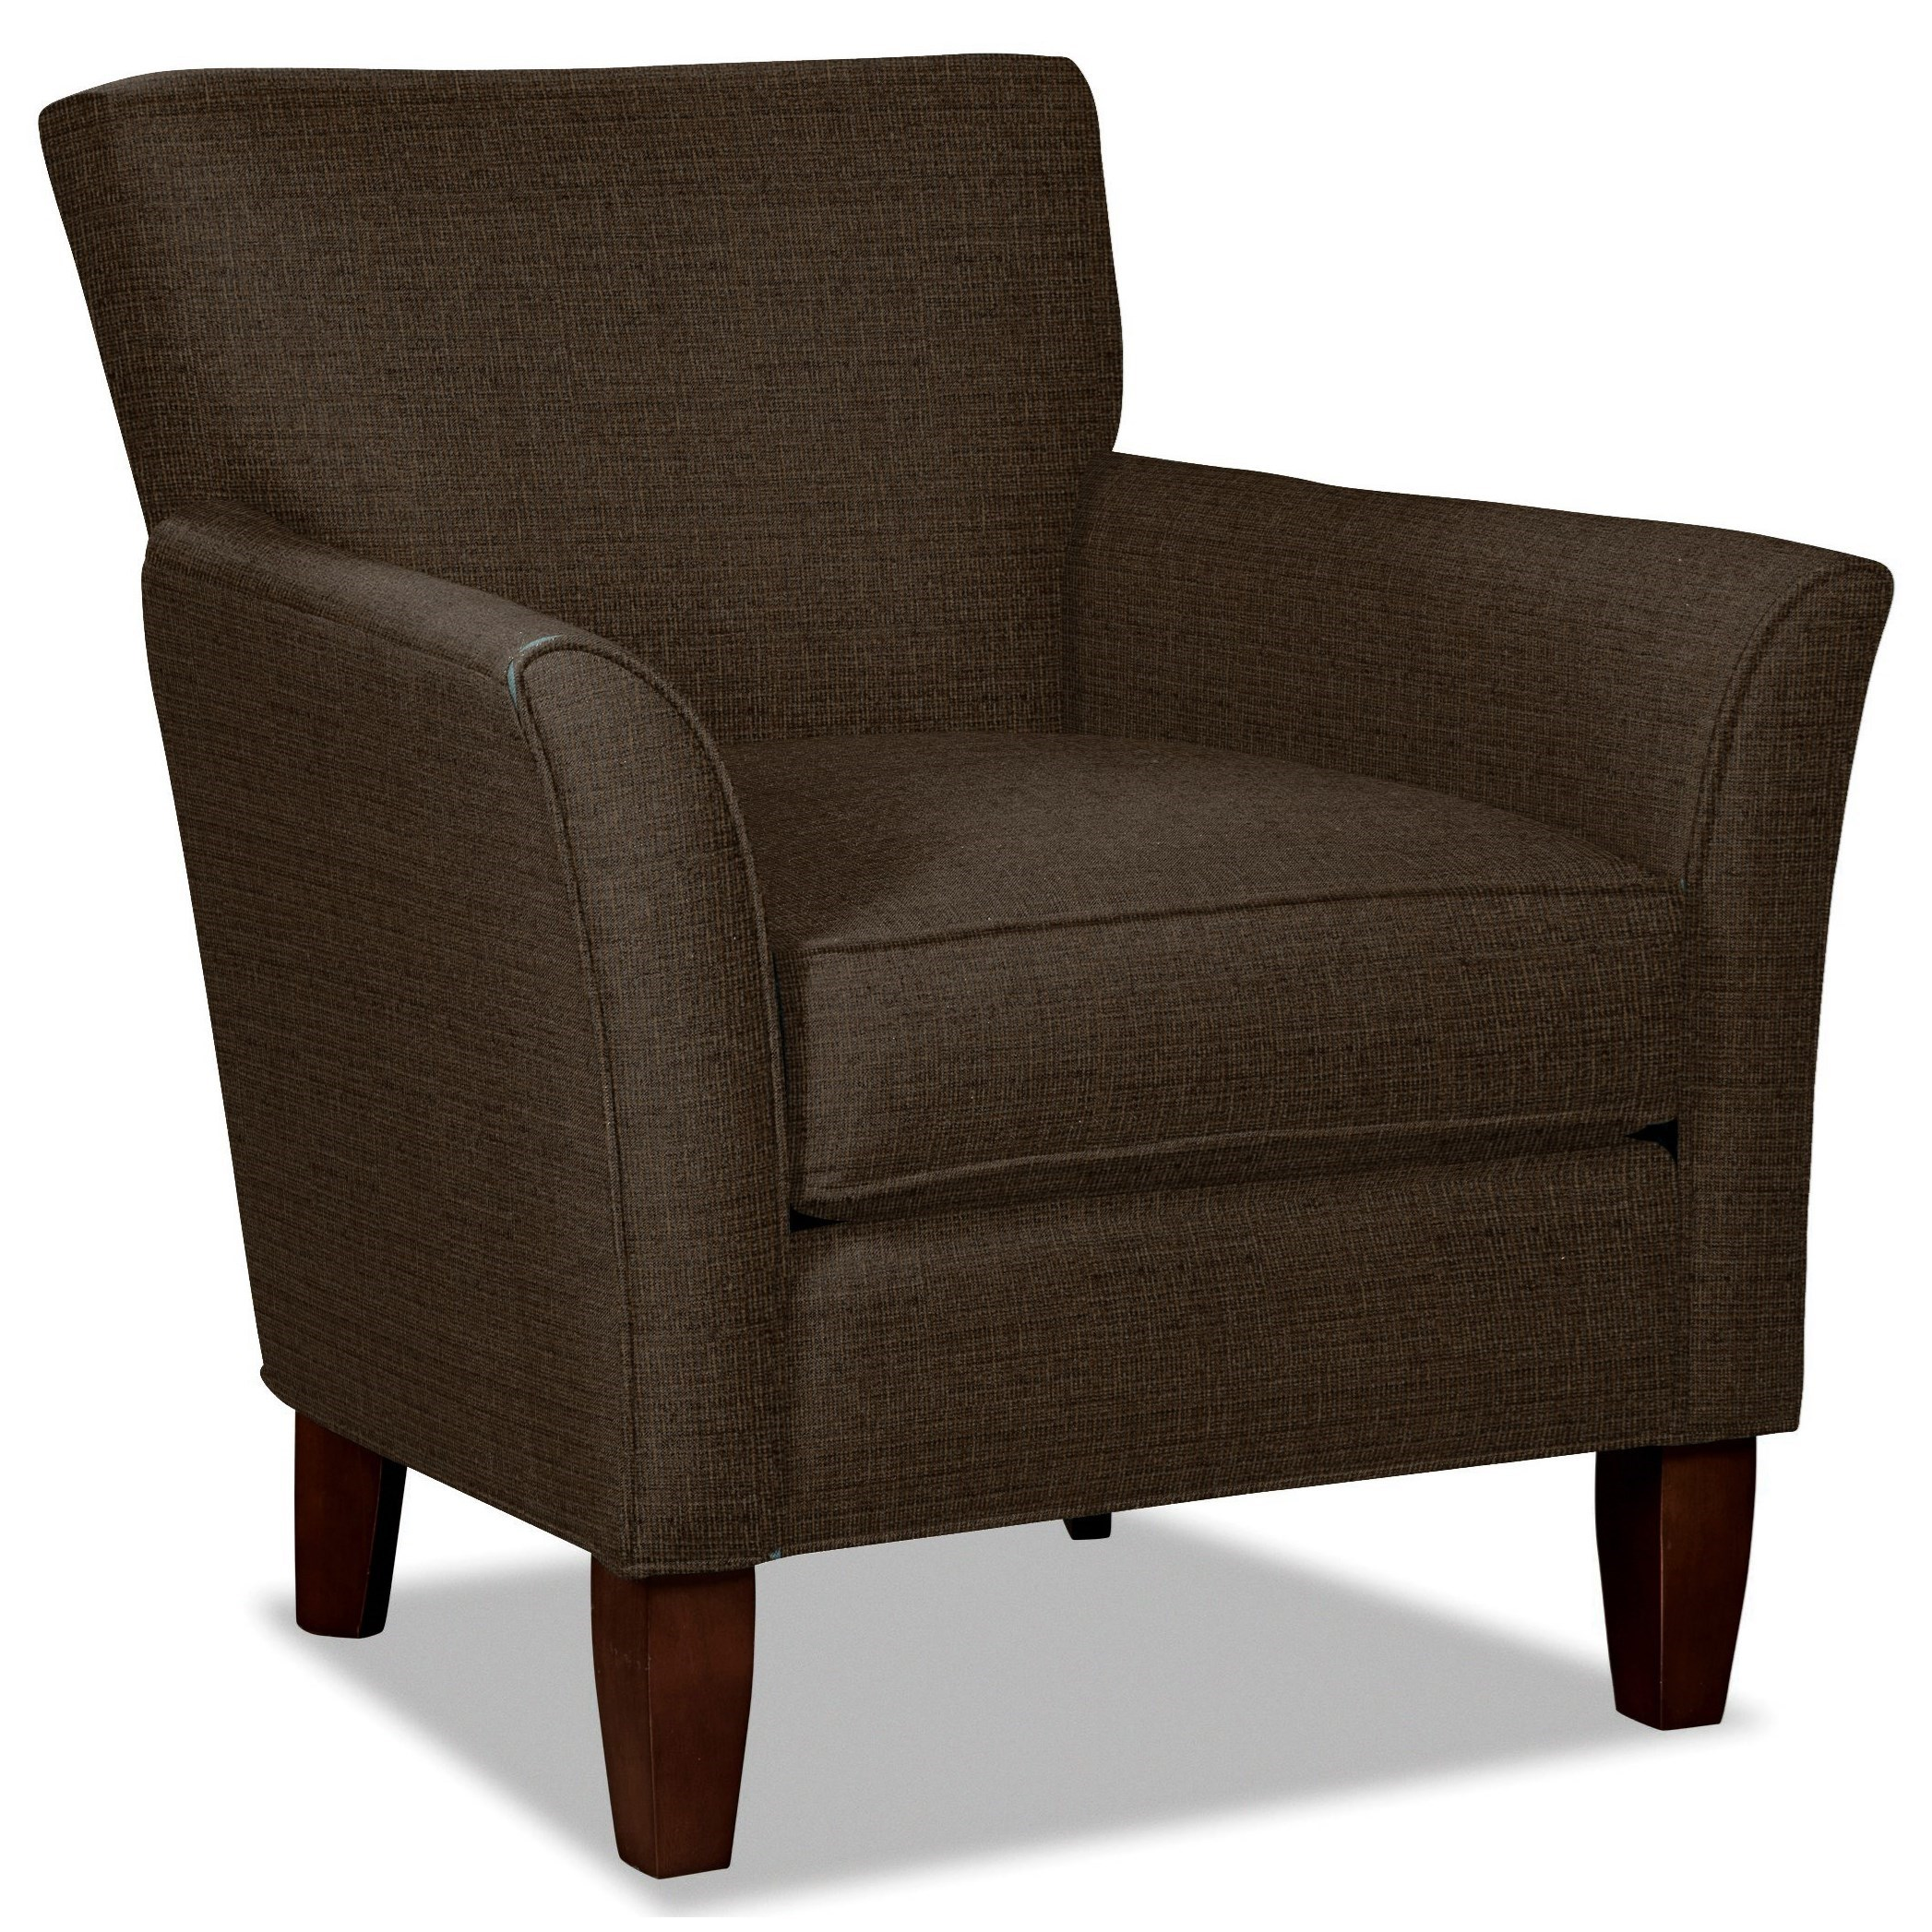 Craftmaster 060110 Accent Chair - Item Number: 060110-EJECT-09